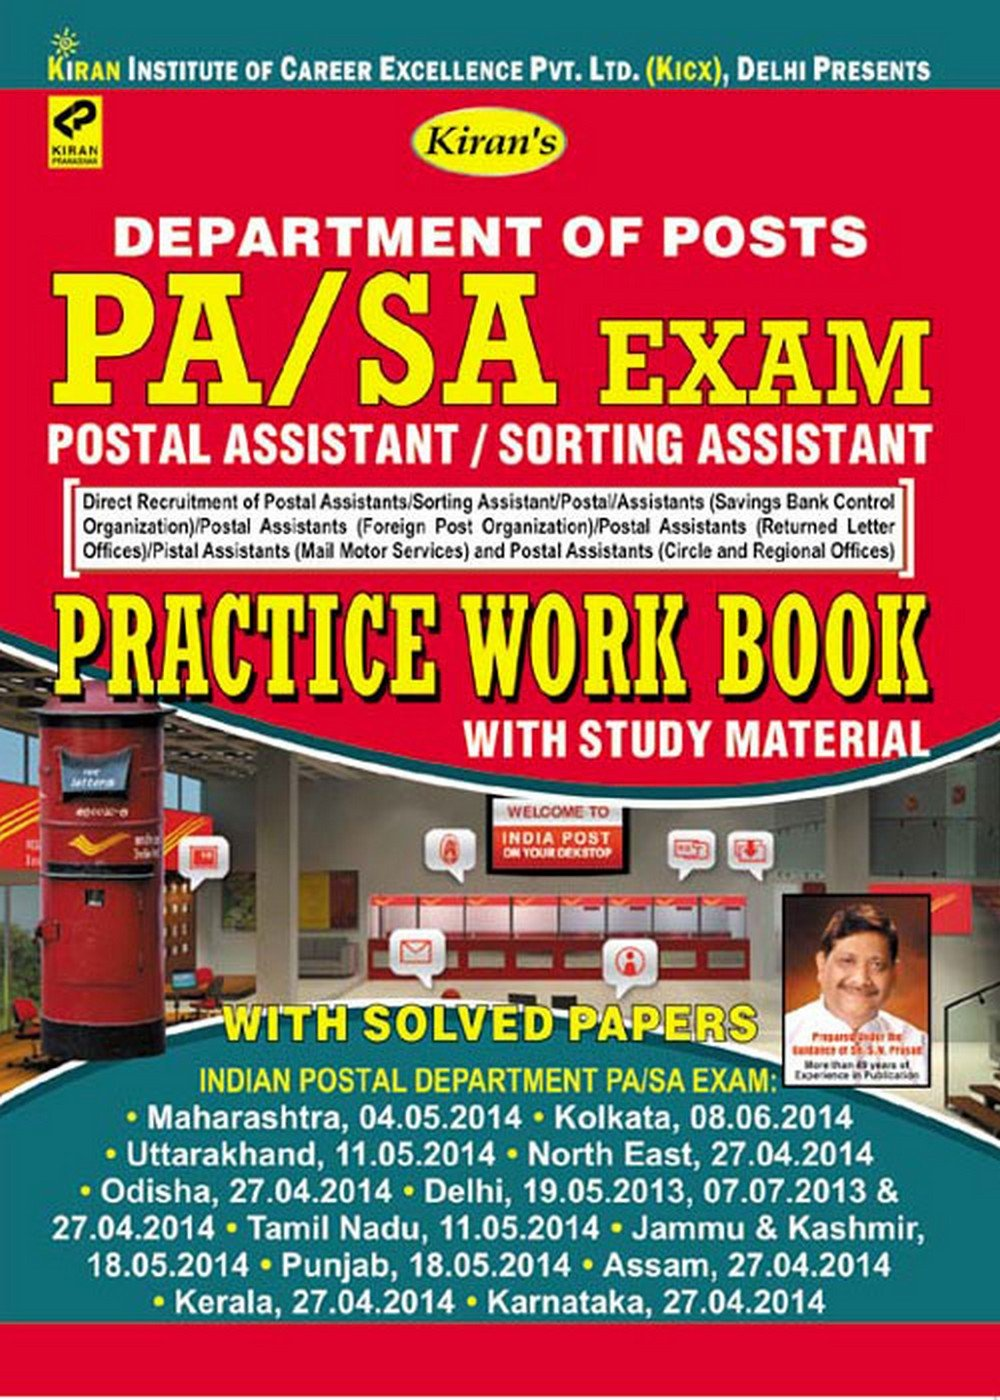 Postal assistant exam reference books & study materials.